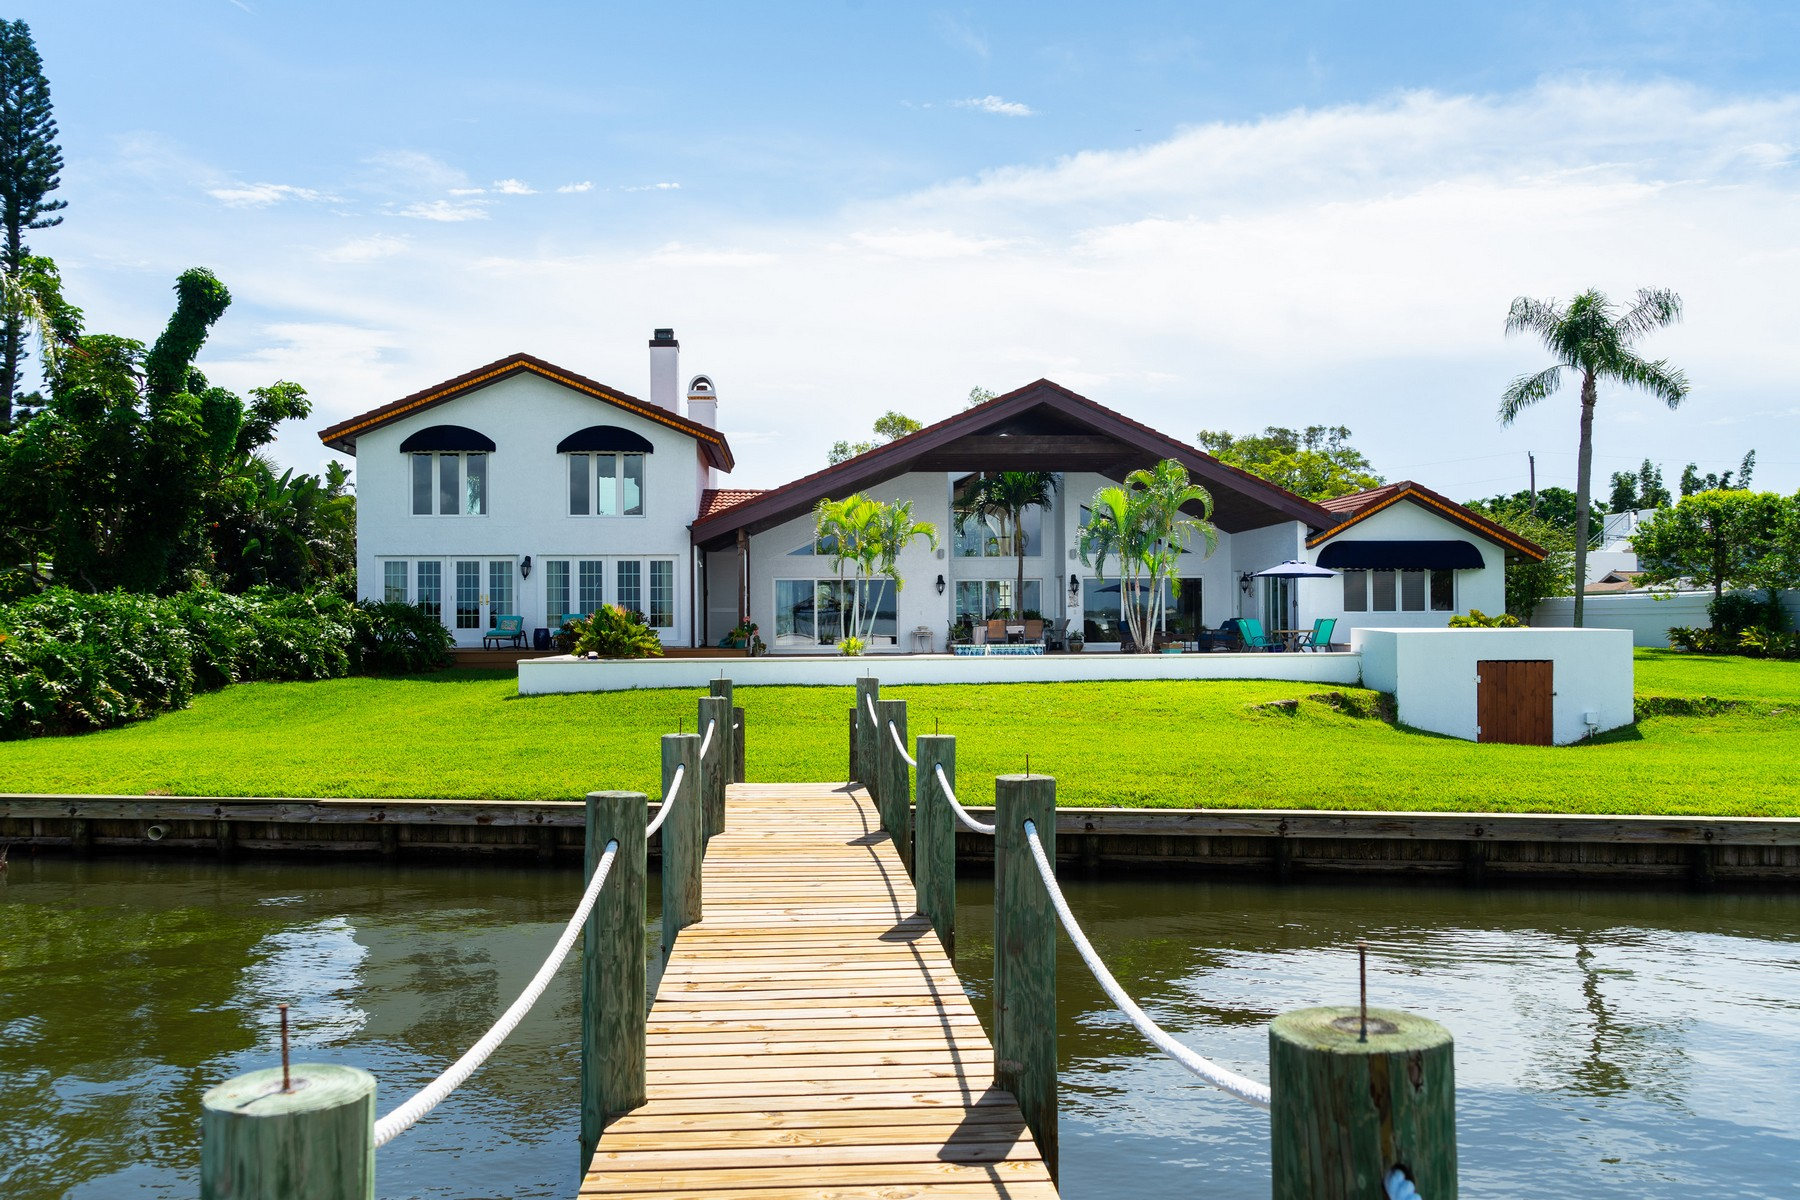 Property for Sale at Captivating Riverfront Pool Home 1508 Pine Street Melbourne Beach, Florida 32951 United States